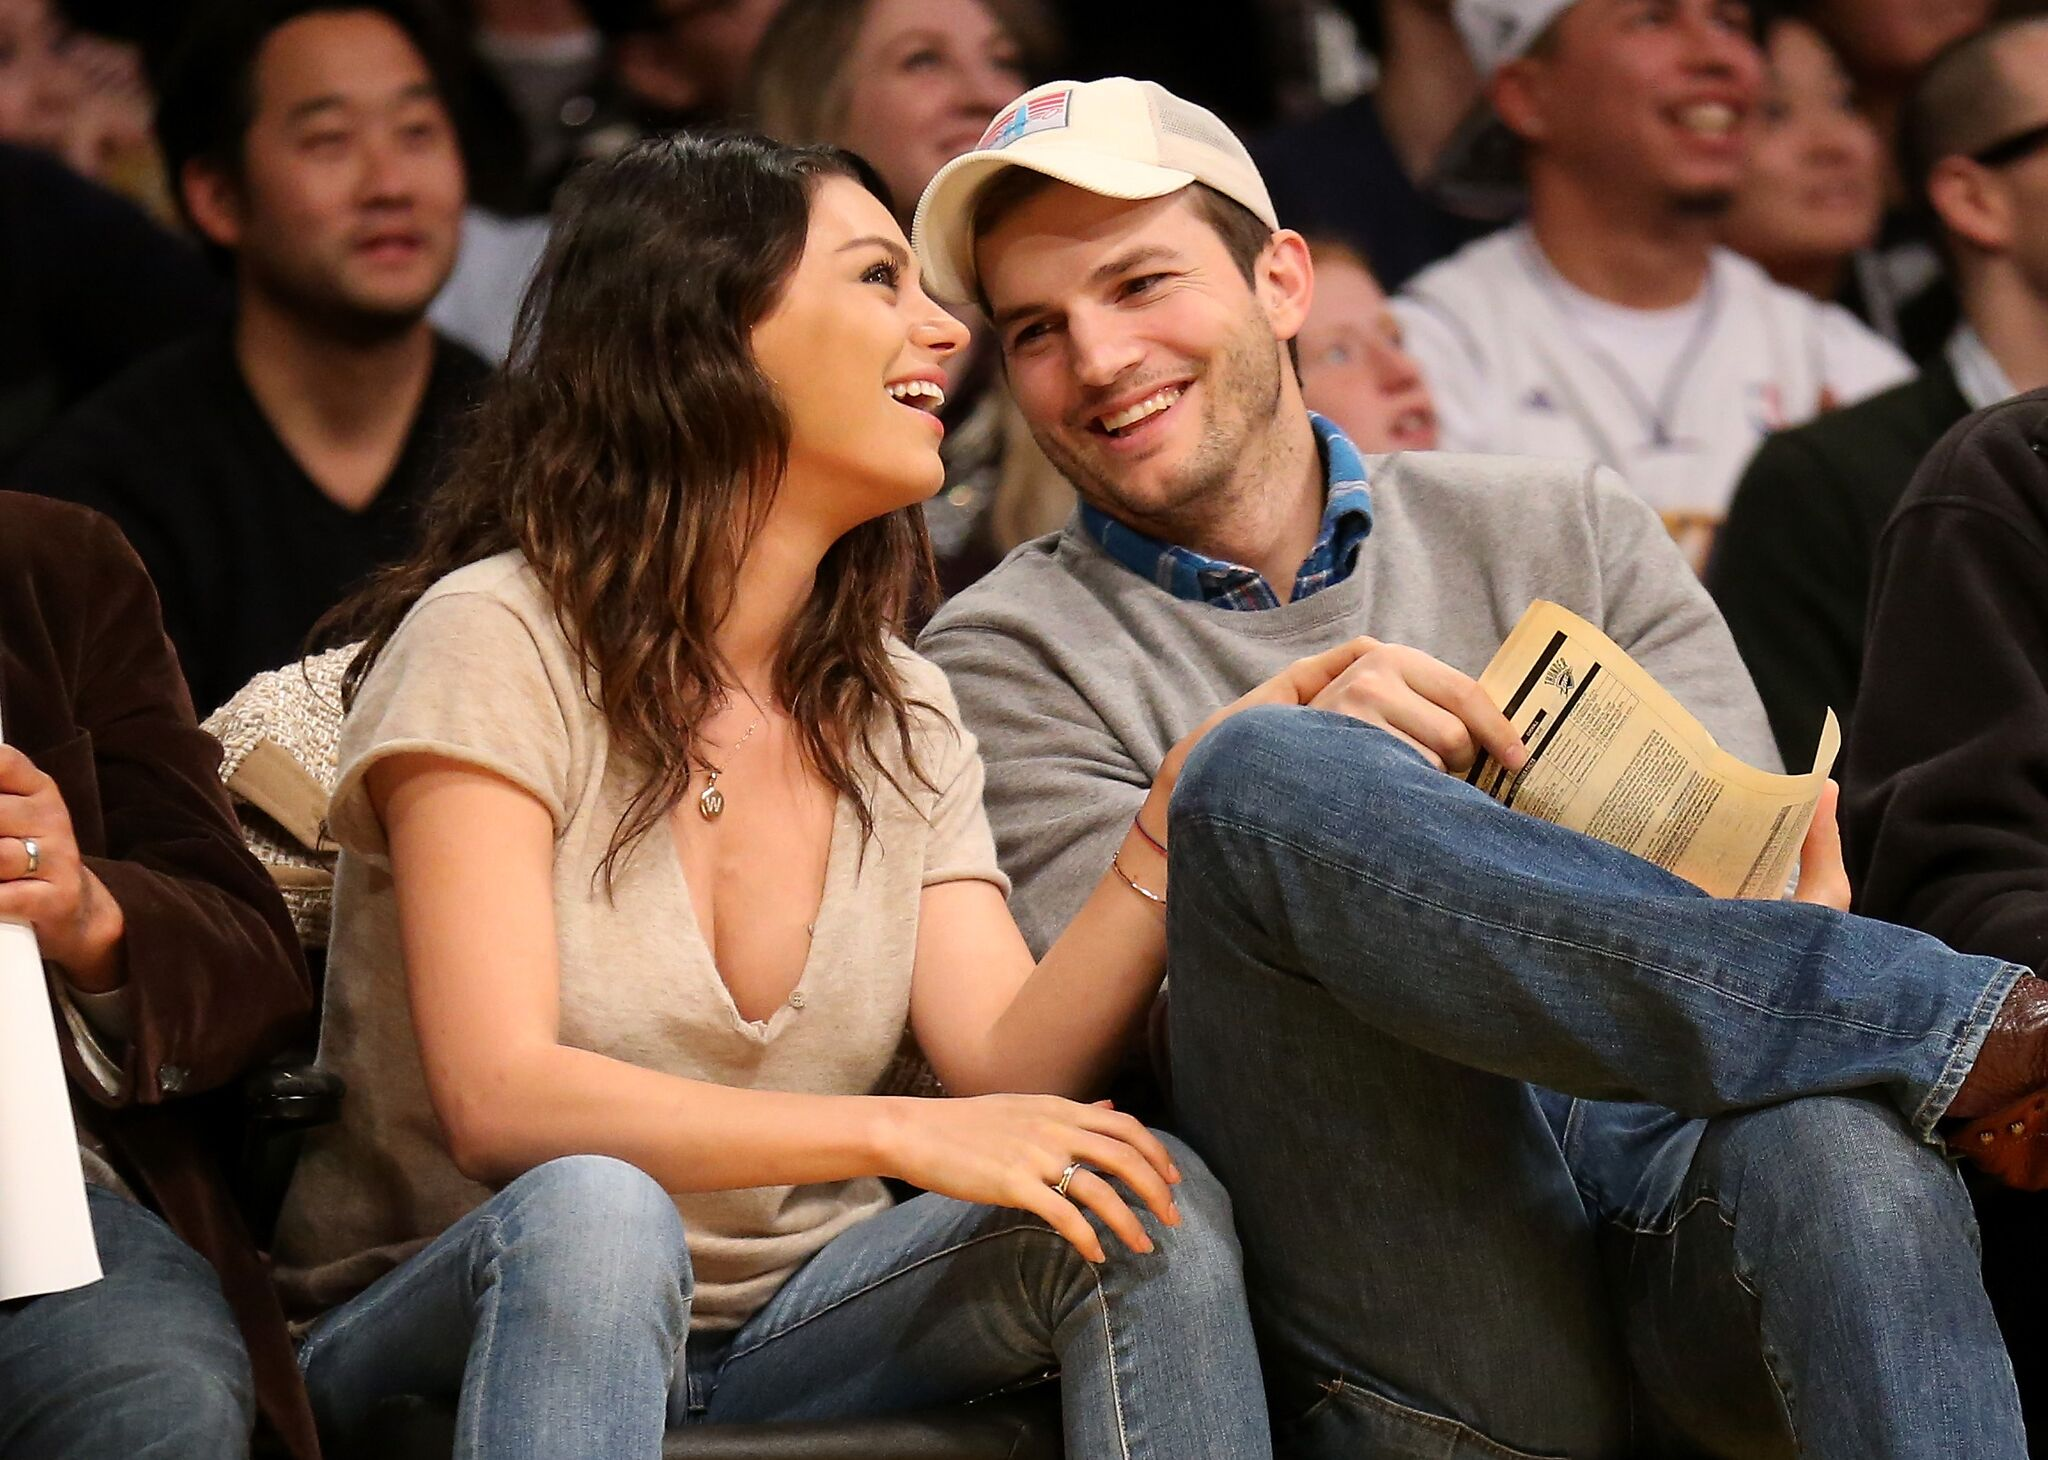 Ashton Kucher und Mila Kunis besuchen das Spiel zwischen den Oklahoma City Thunder und den Los Angeles Lakers im Staples Center | Quelle: Getty Images